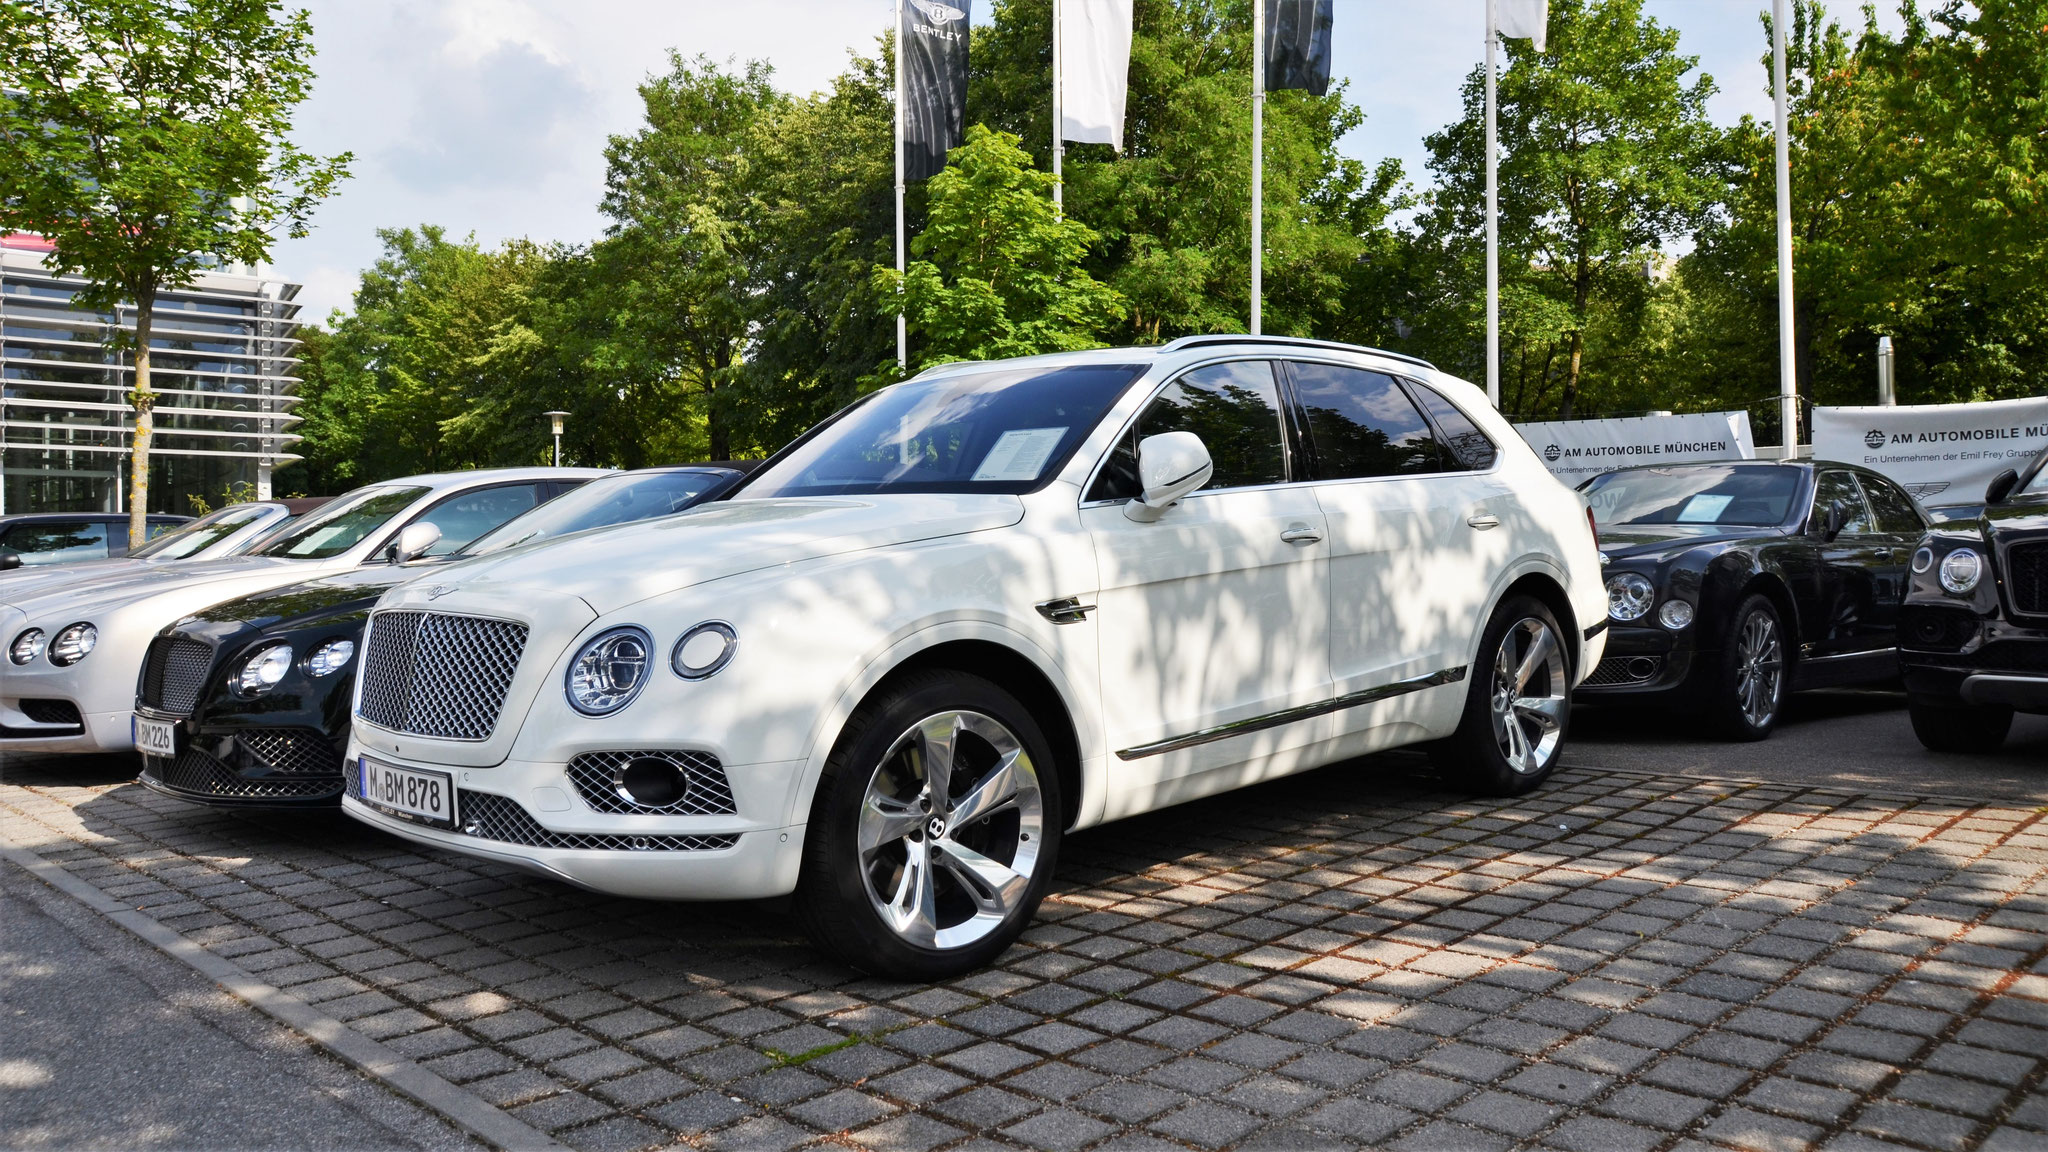 Bentley Bentayga - M-BM-878